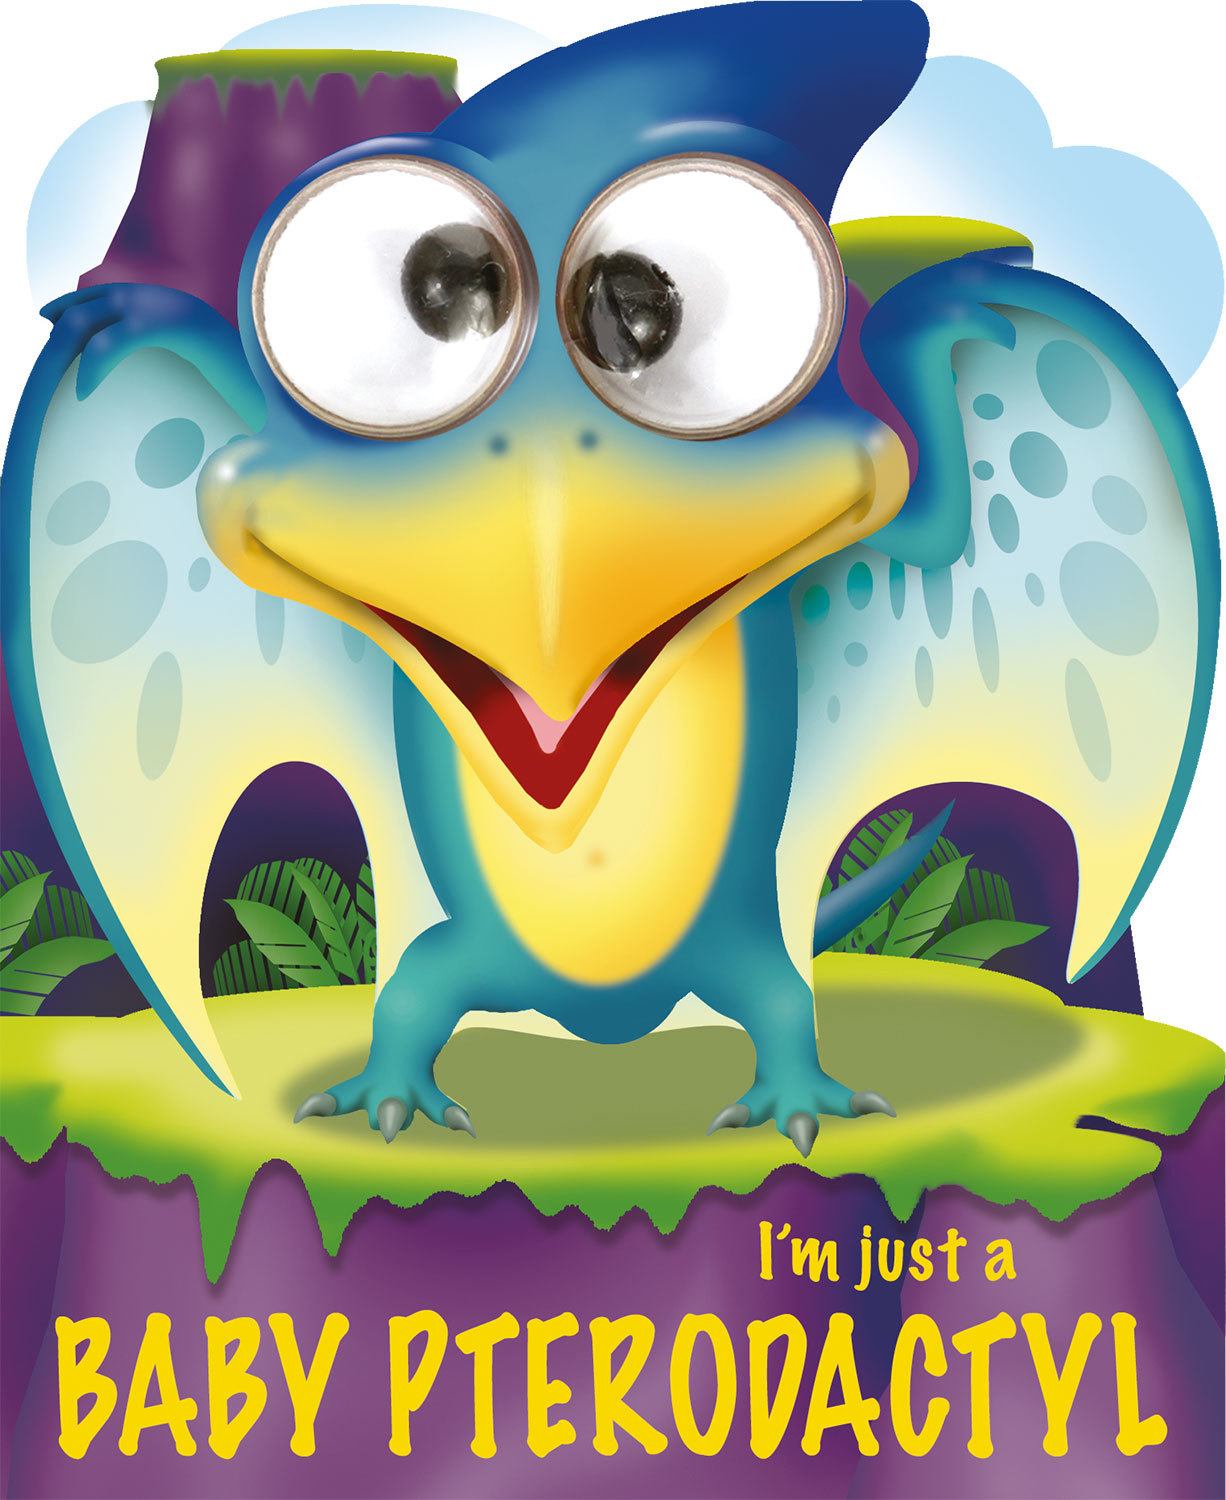 I'M JUST A BABY PTERODACTYL